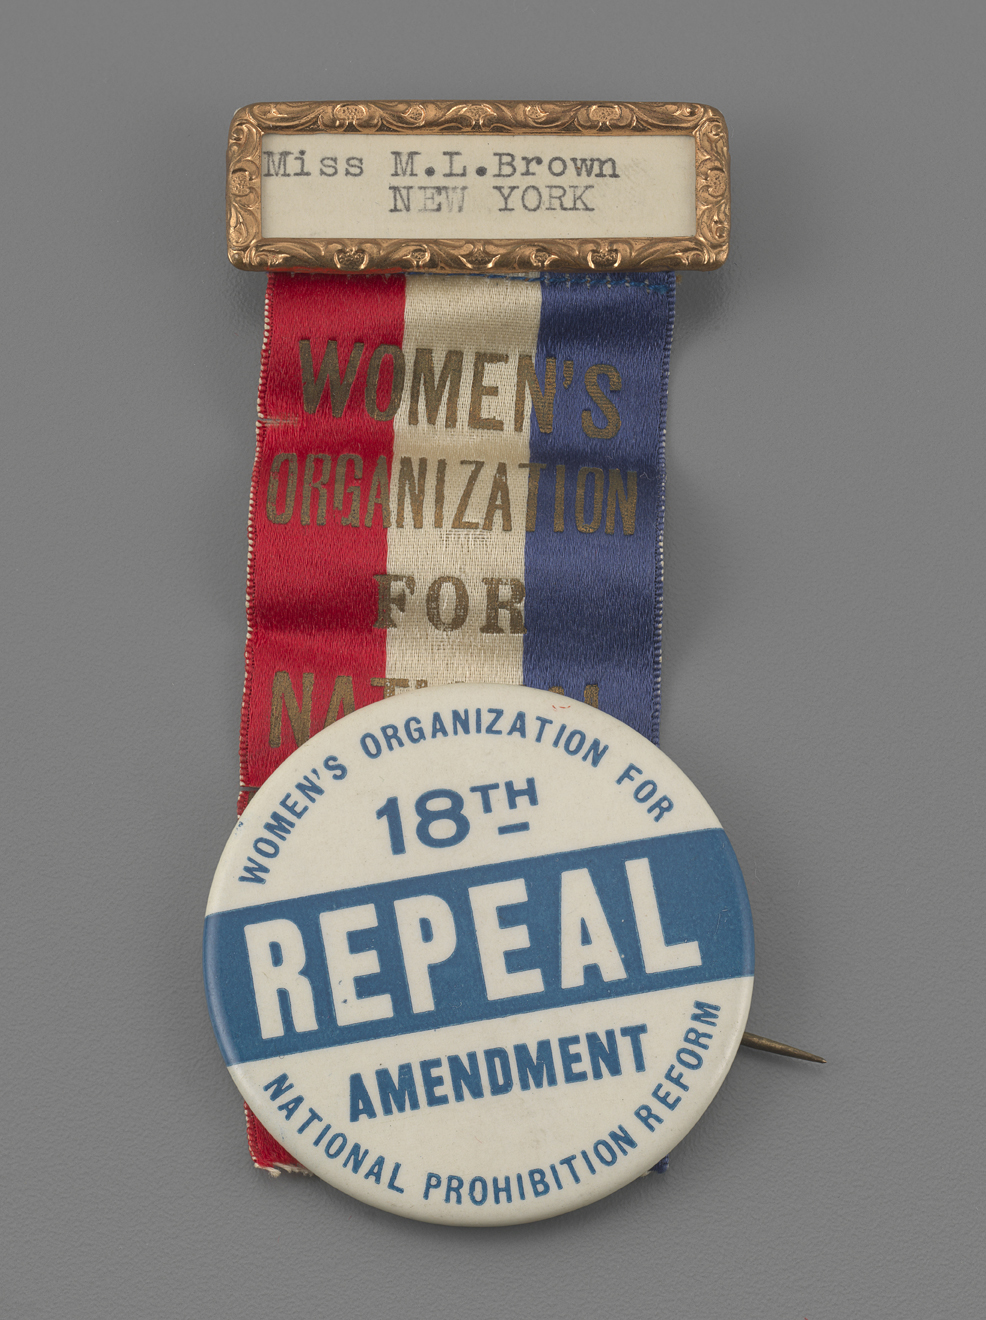 Badge from Margaret Brown Remington, Secretary of the New York State Meetings Committee of the Women's Organization for National Prohibition Reform